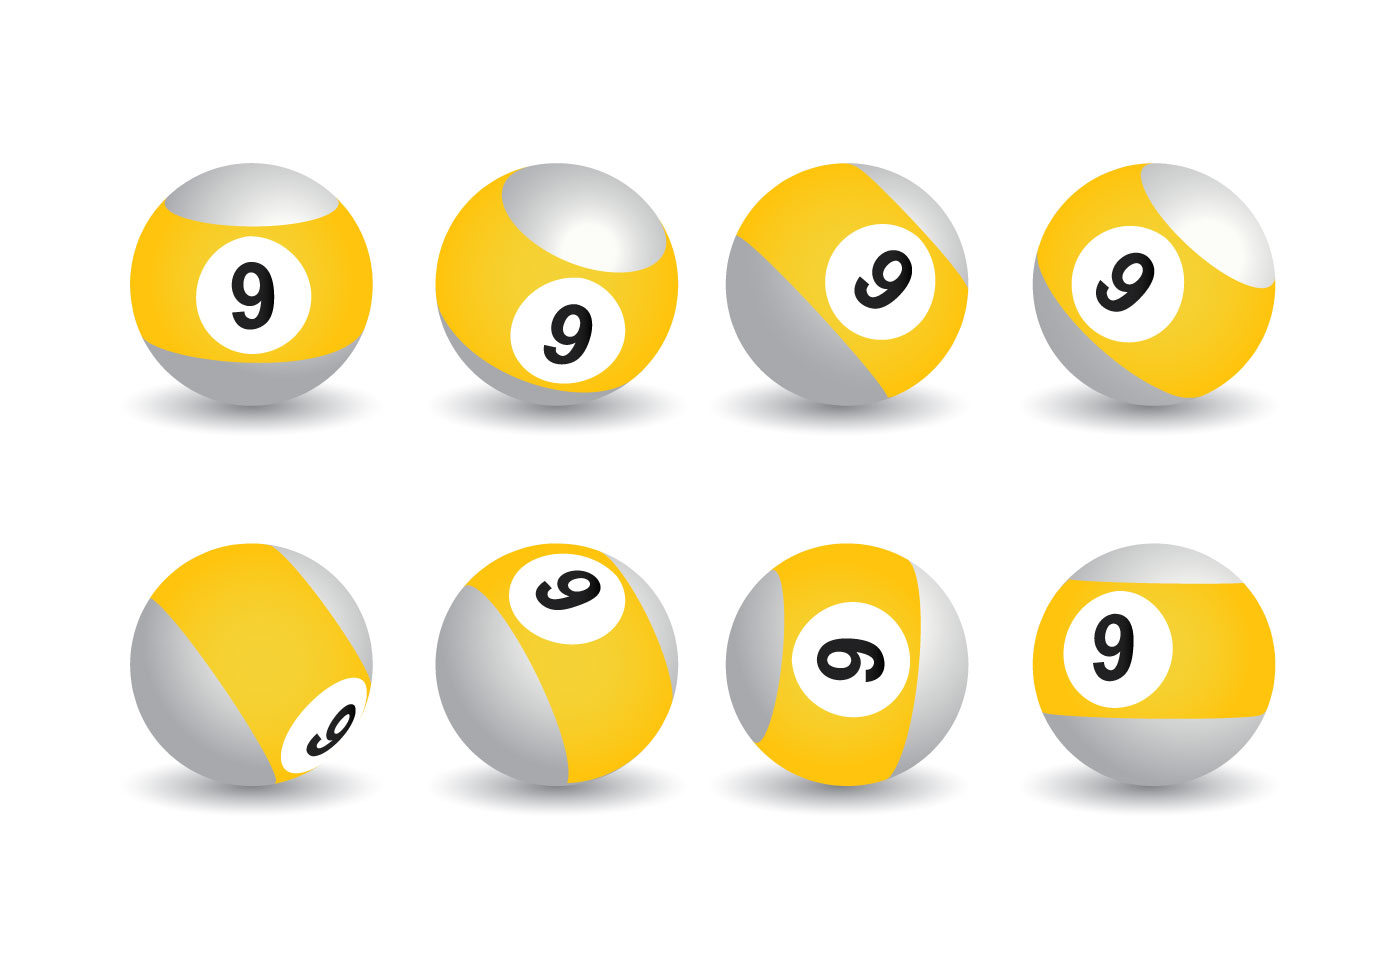 9 Ball Pool Free Vector Art.